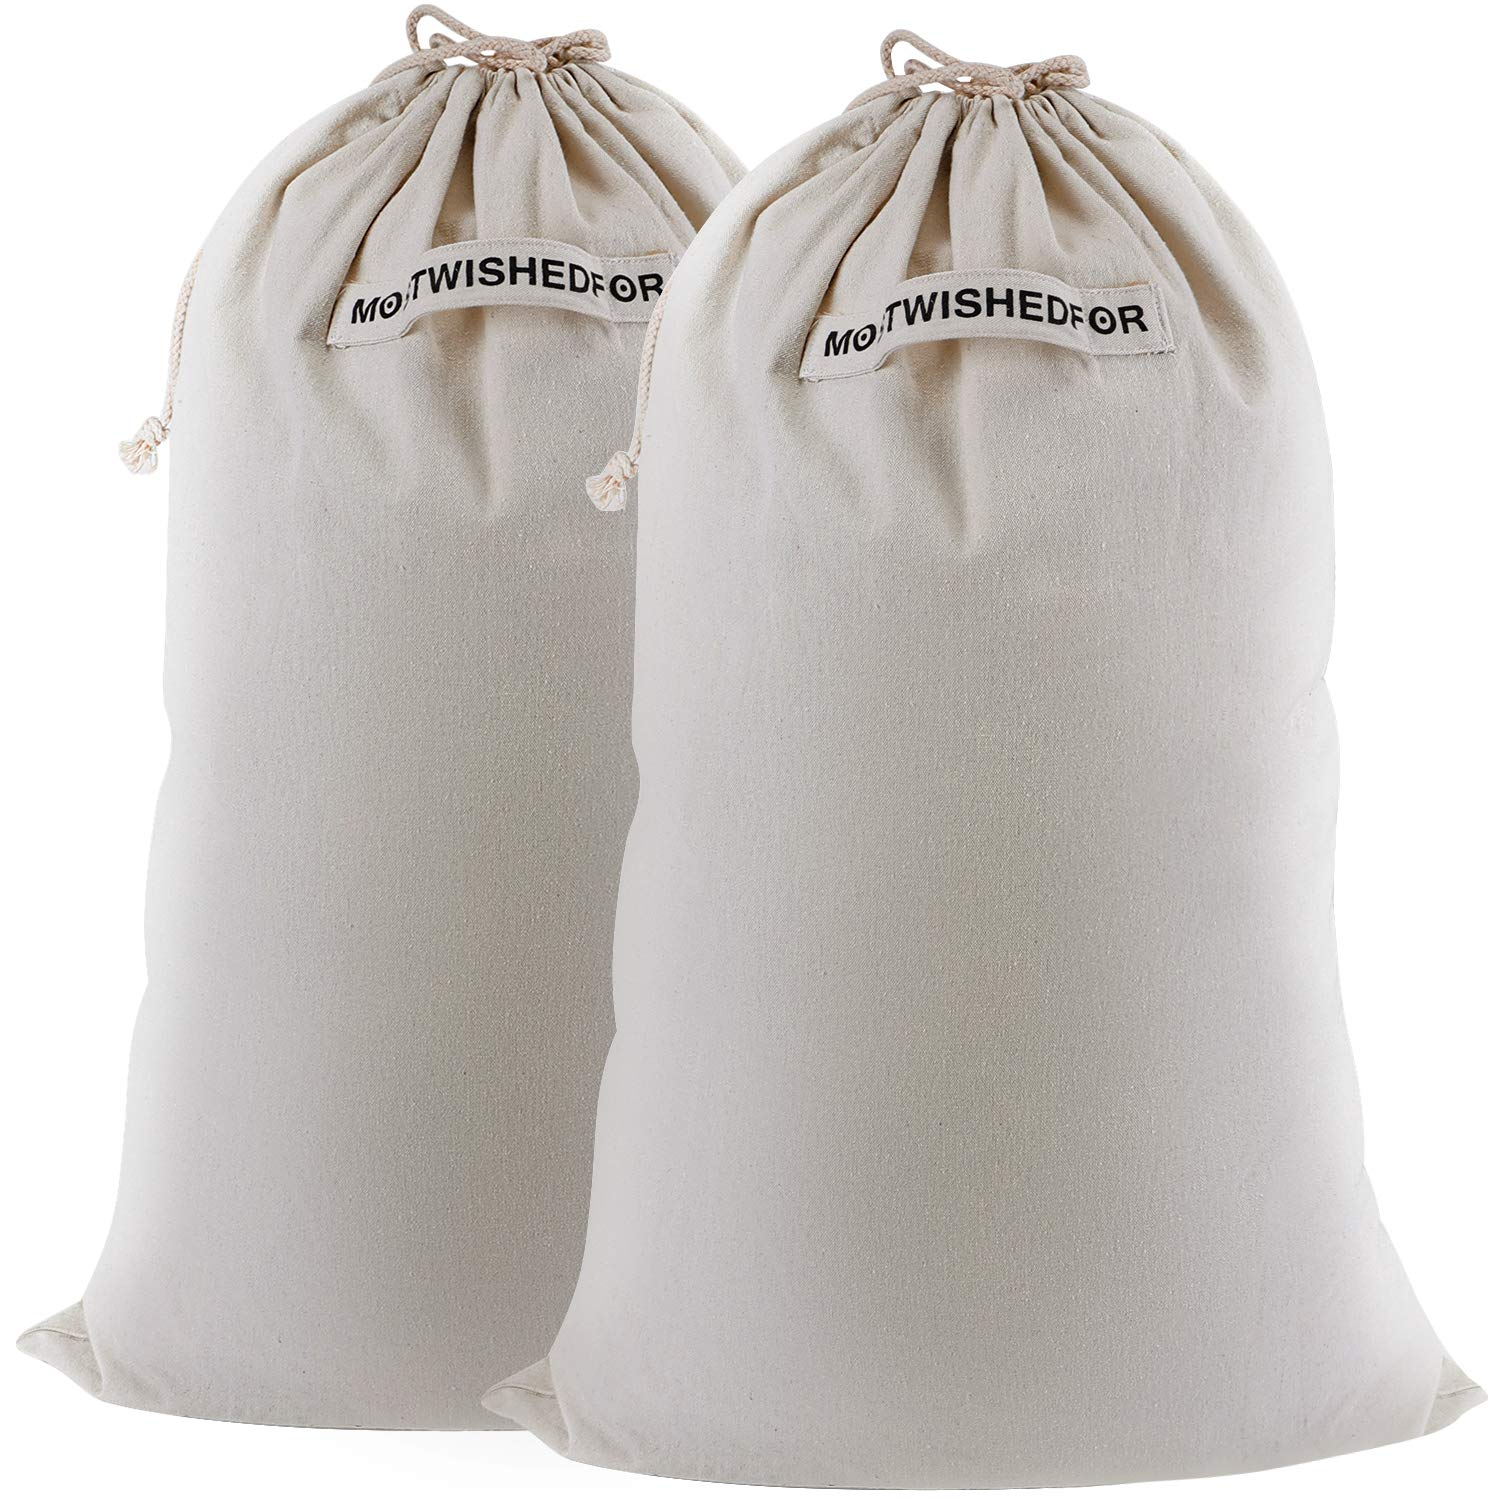 "2pcs 24""x36"" Large Dirty Laundry Bag Storage with Handle for Travel Wash Heavy Duty College Students Dorm Clothes Pack Household Essential Canvas Camp Cotton Sack Kids Dry Cleaning Carrier Beige"